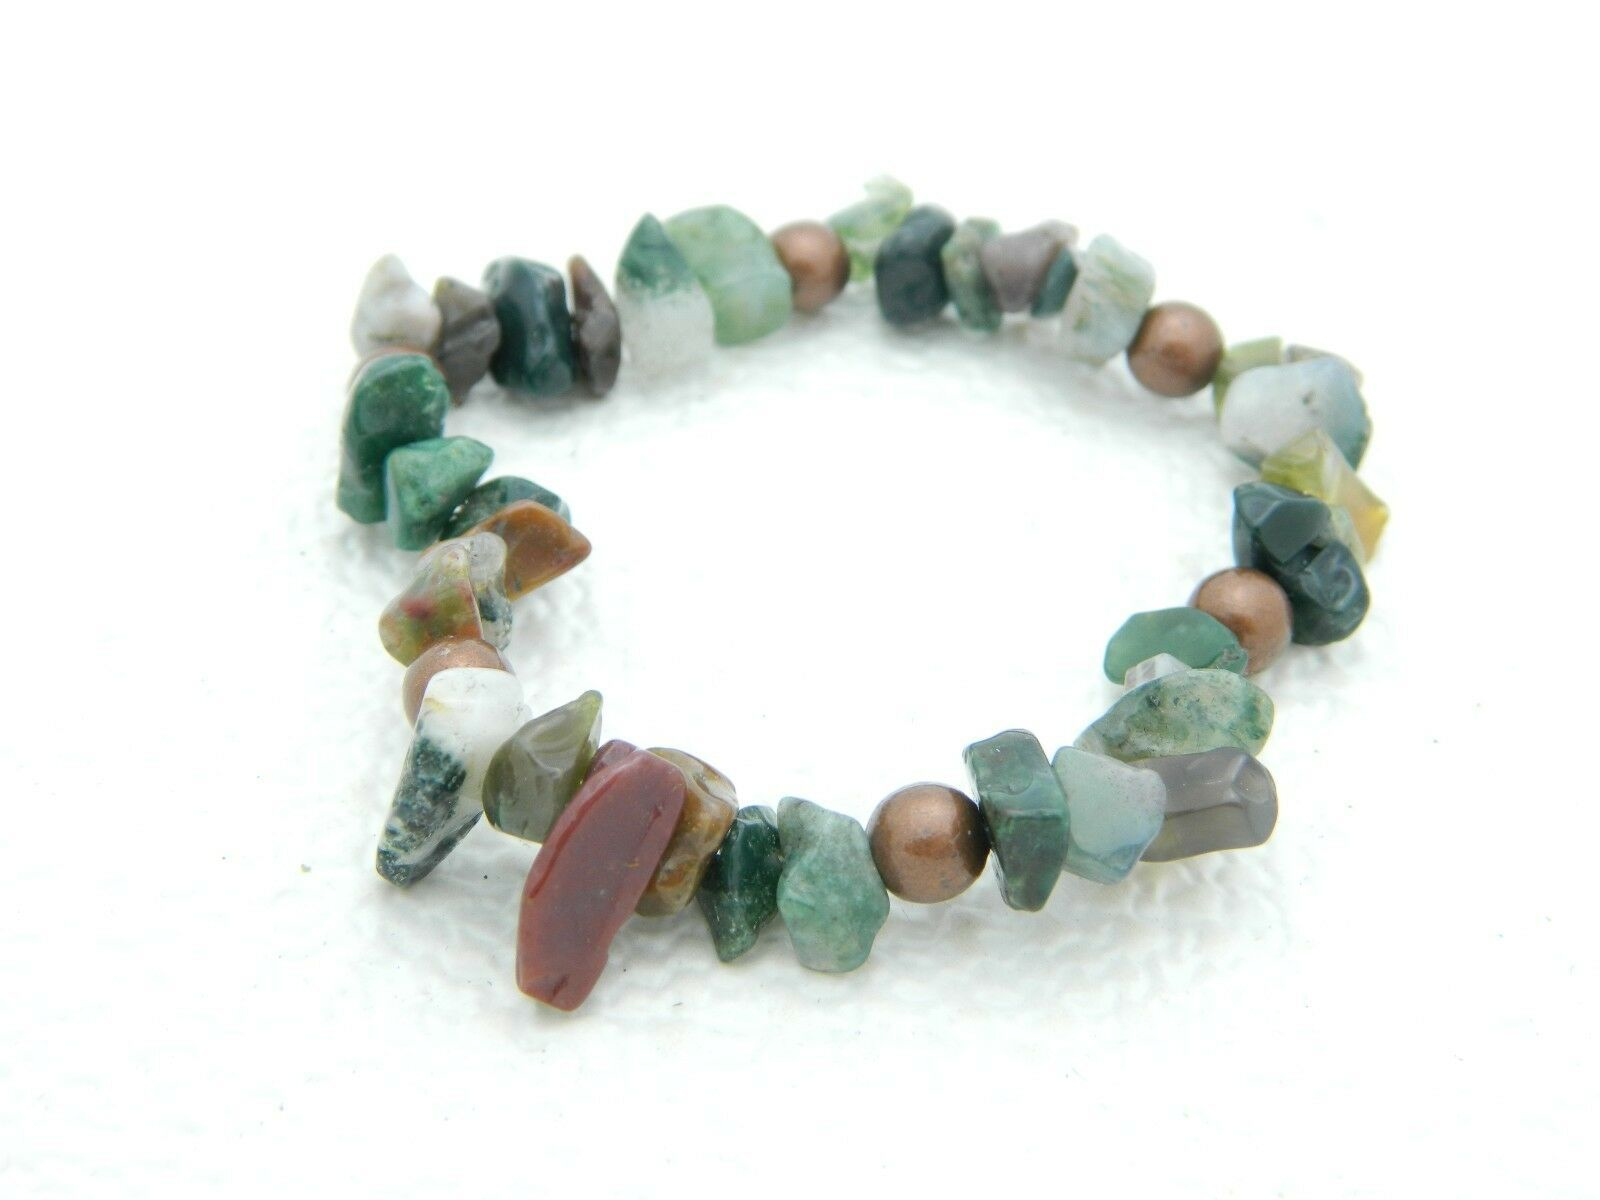 Primary image for VTG Polished Gemstone Agate Quartz Bead Stretch Bracelet